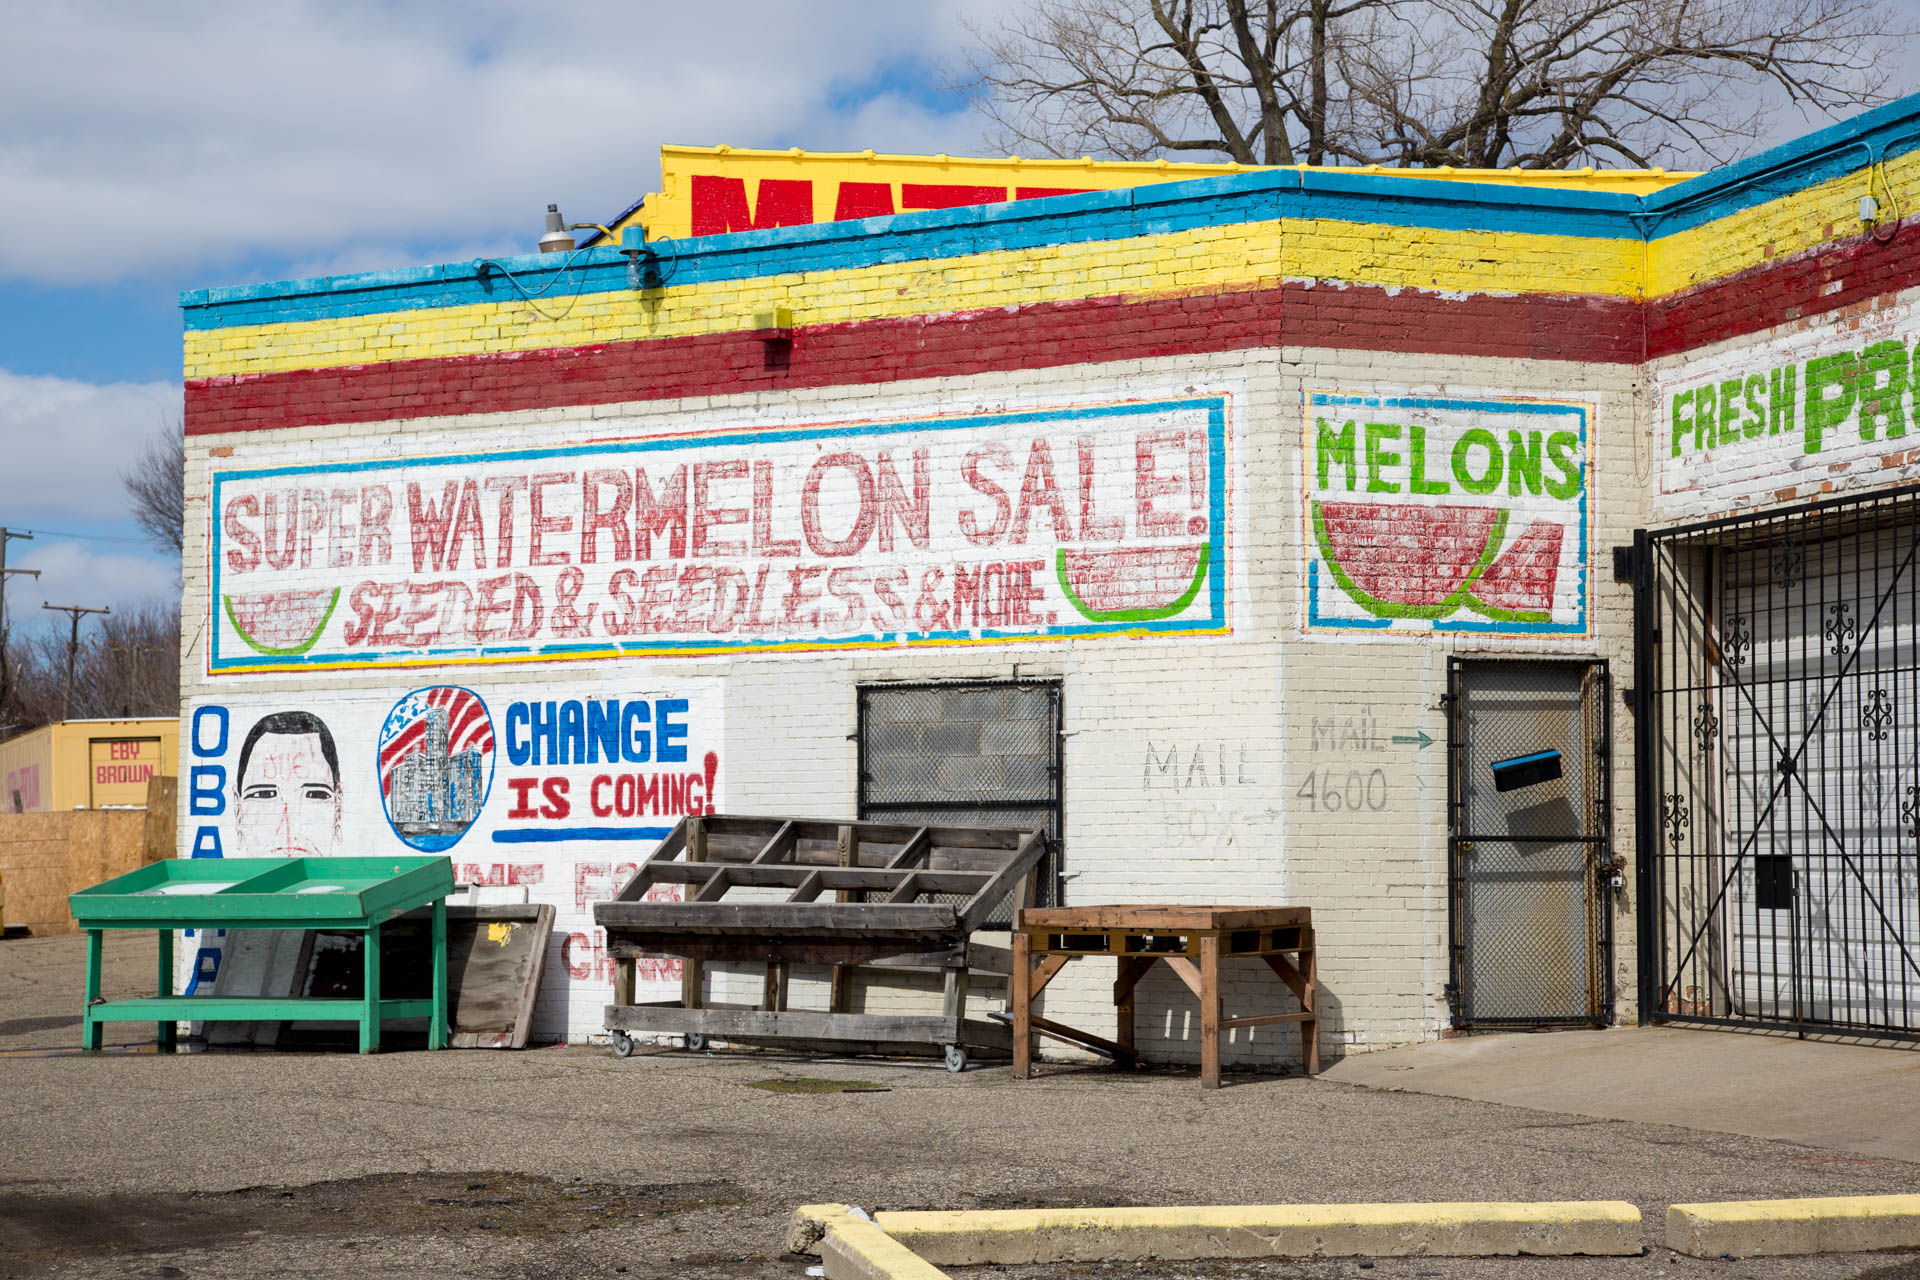 detroit-watermelon-sale-obama-change-is-coming